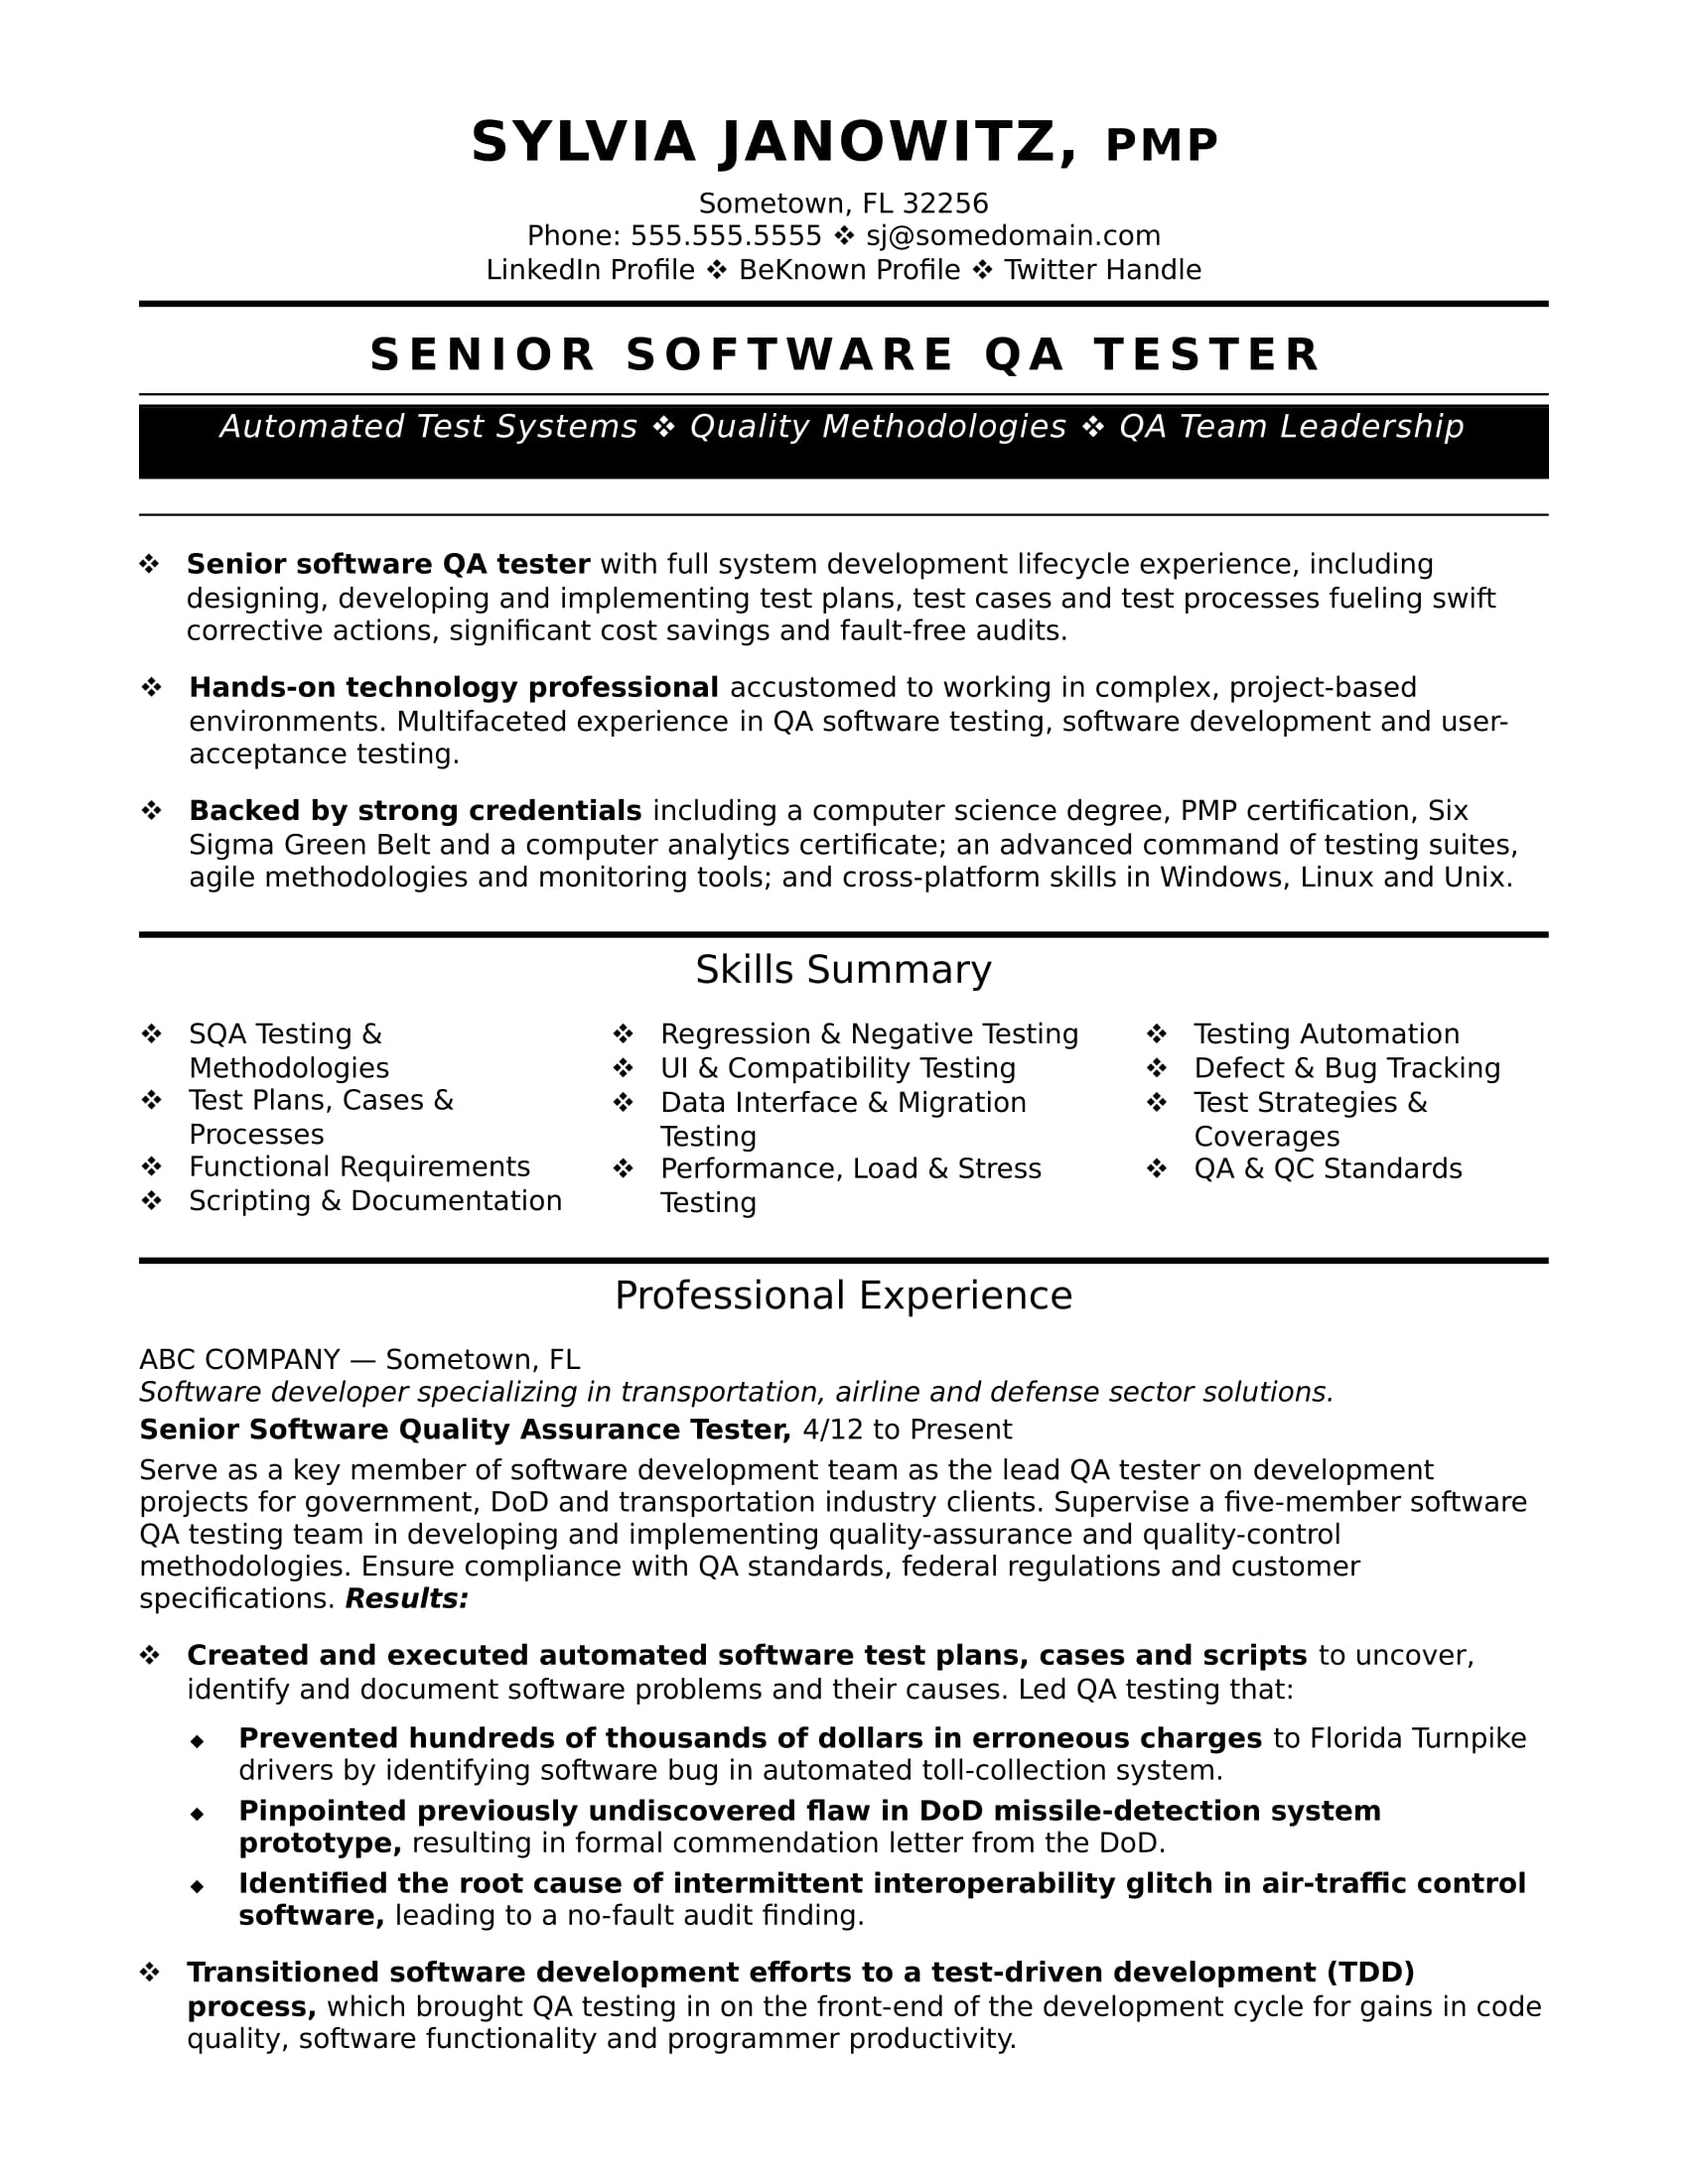 experienced qa software tester resume sample monster quality assurance analyst project Resume Quality Assurance Analyst Resume Sample